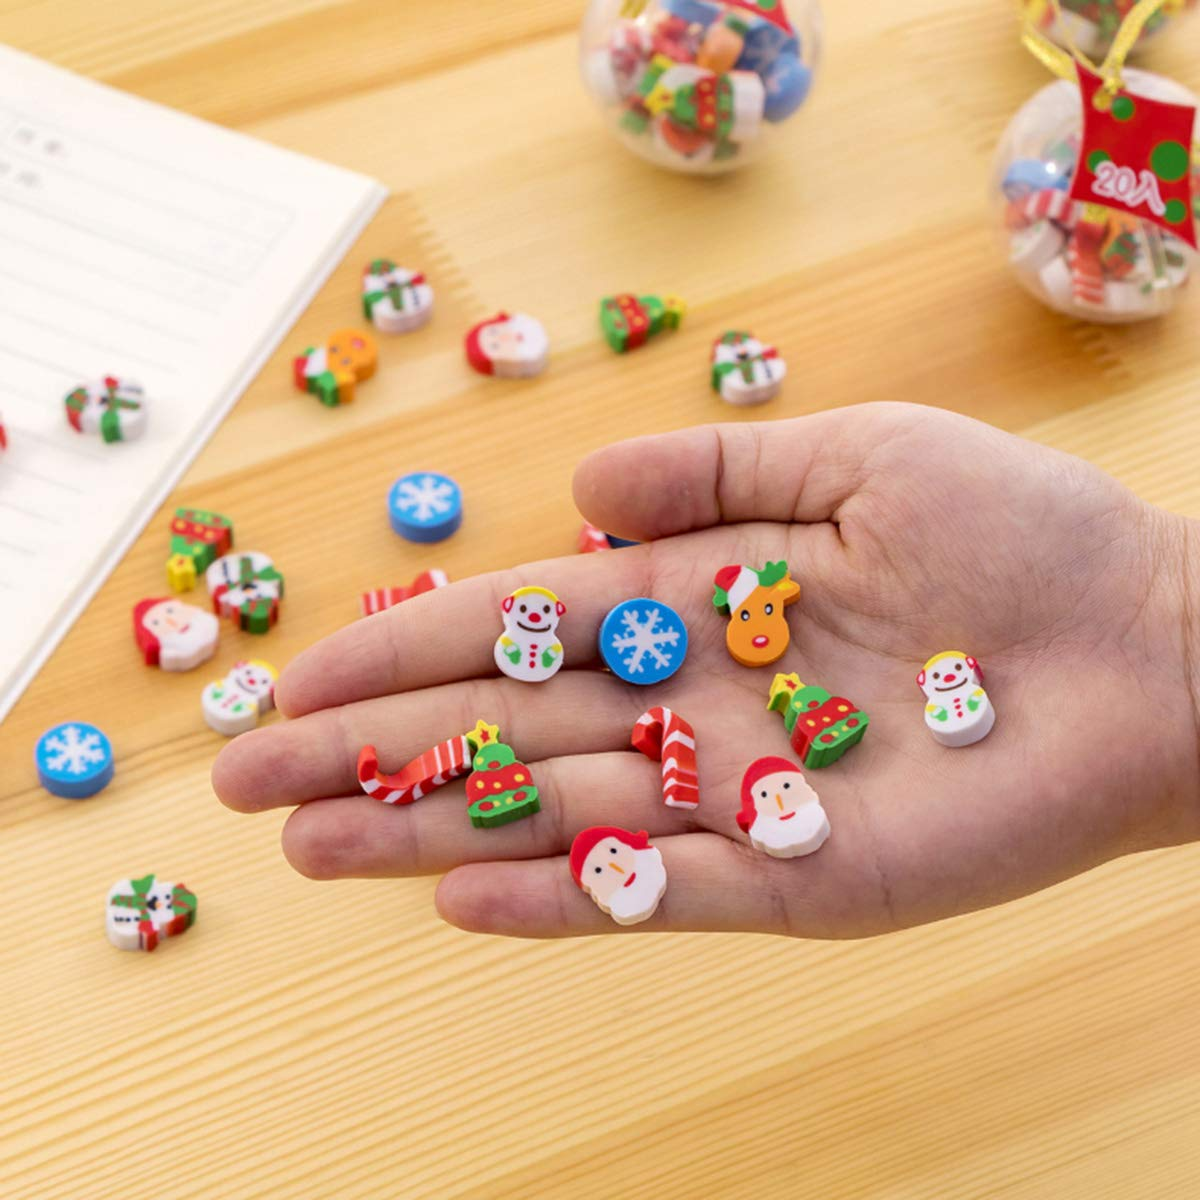 CiCy 120 pcs Christmas Erasers Holiday Erasers for Christmas Party Favors 6 Balls School Prizes and Goodies Bag Fillers Kids Crafts Stocking Stuffers Party Prizes Favors